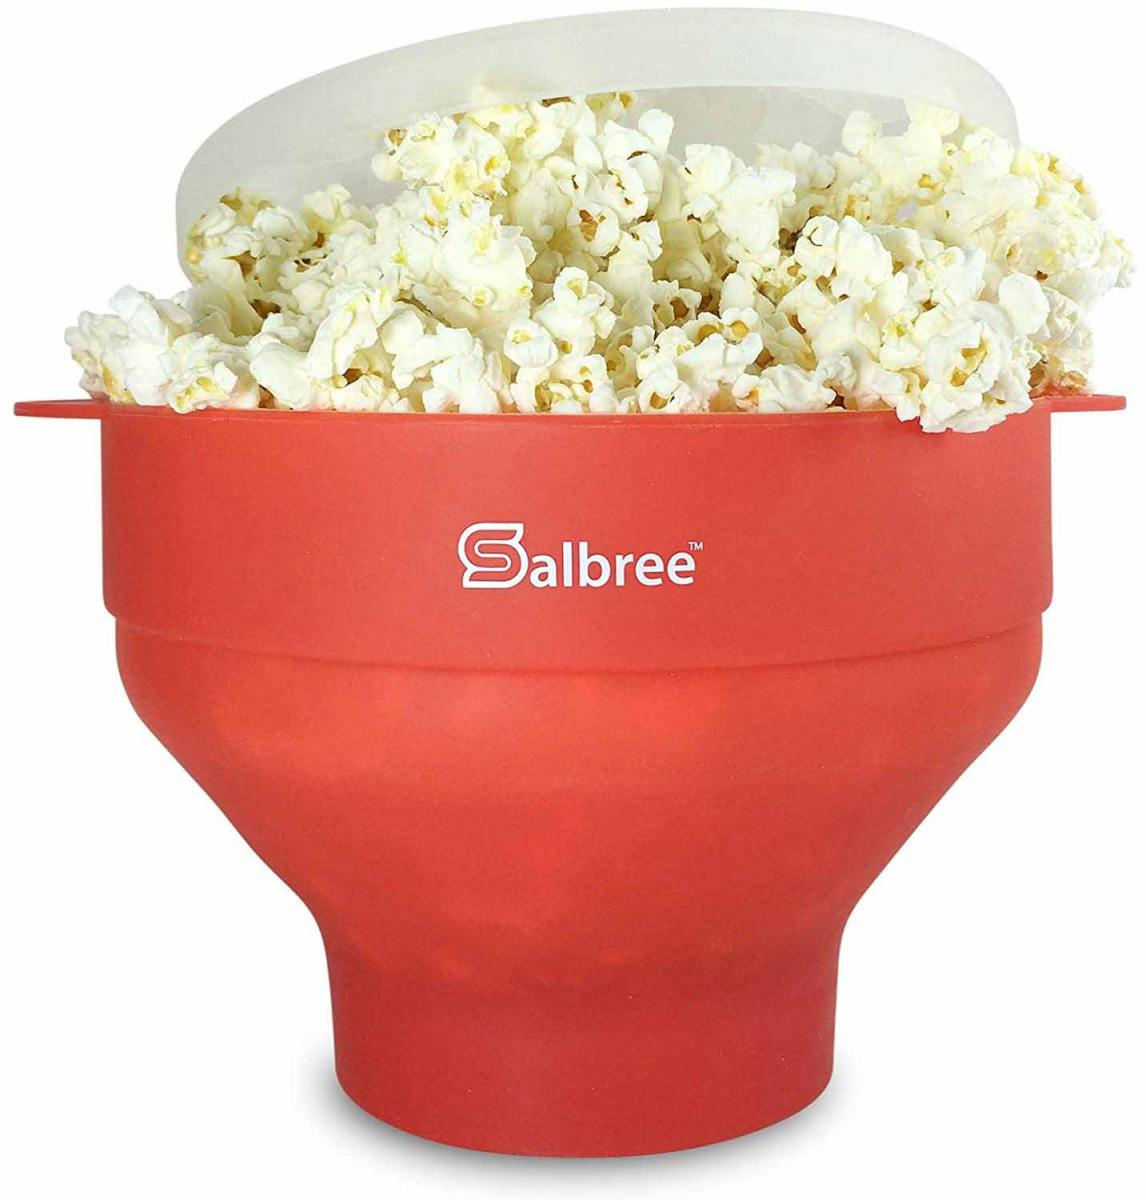 Salbree Popcorn Maker